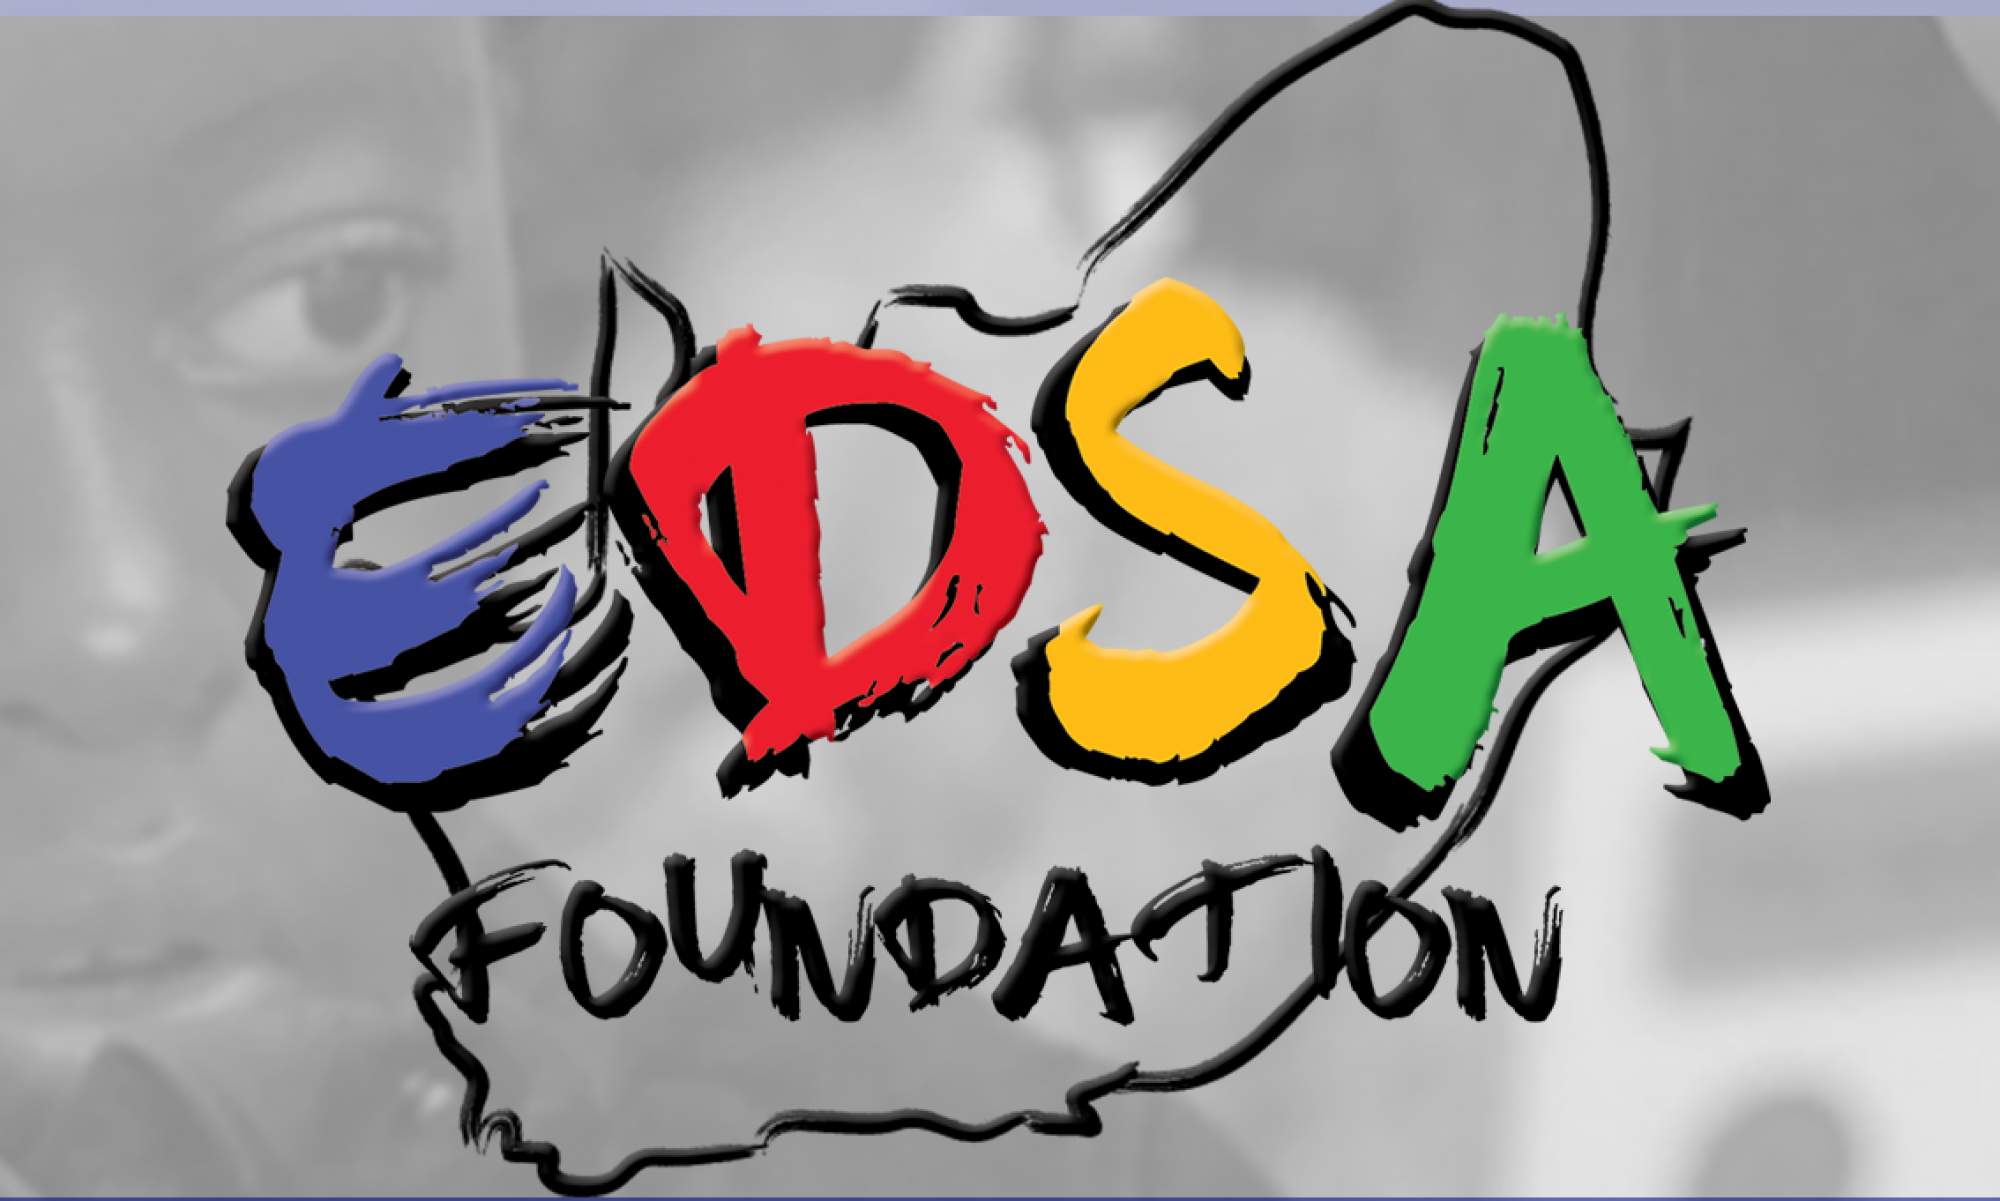 EDSA Foundation